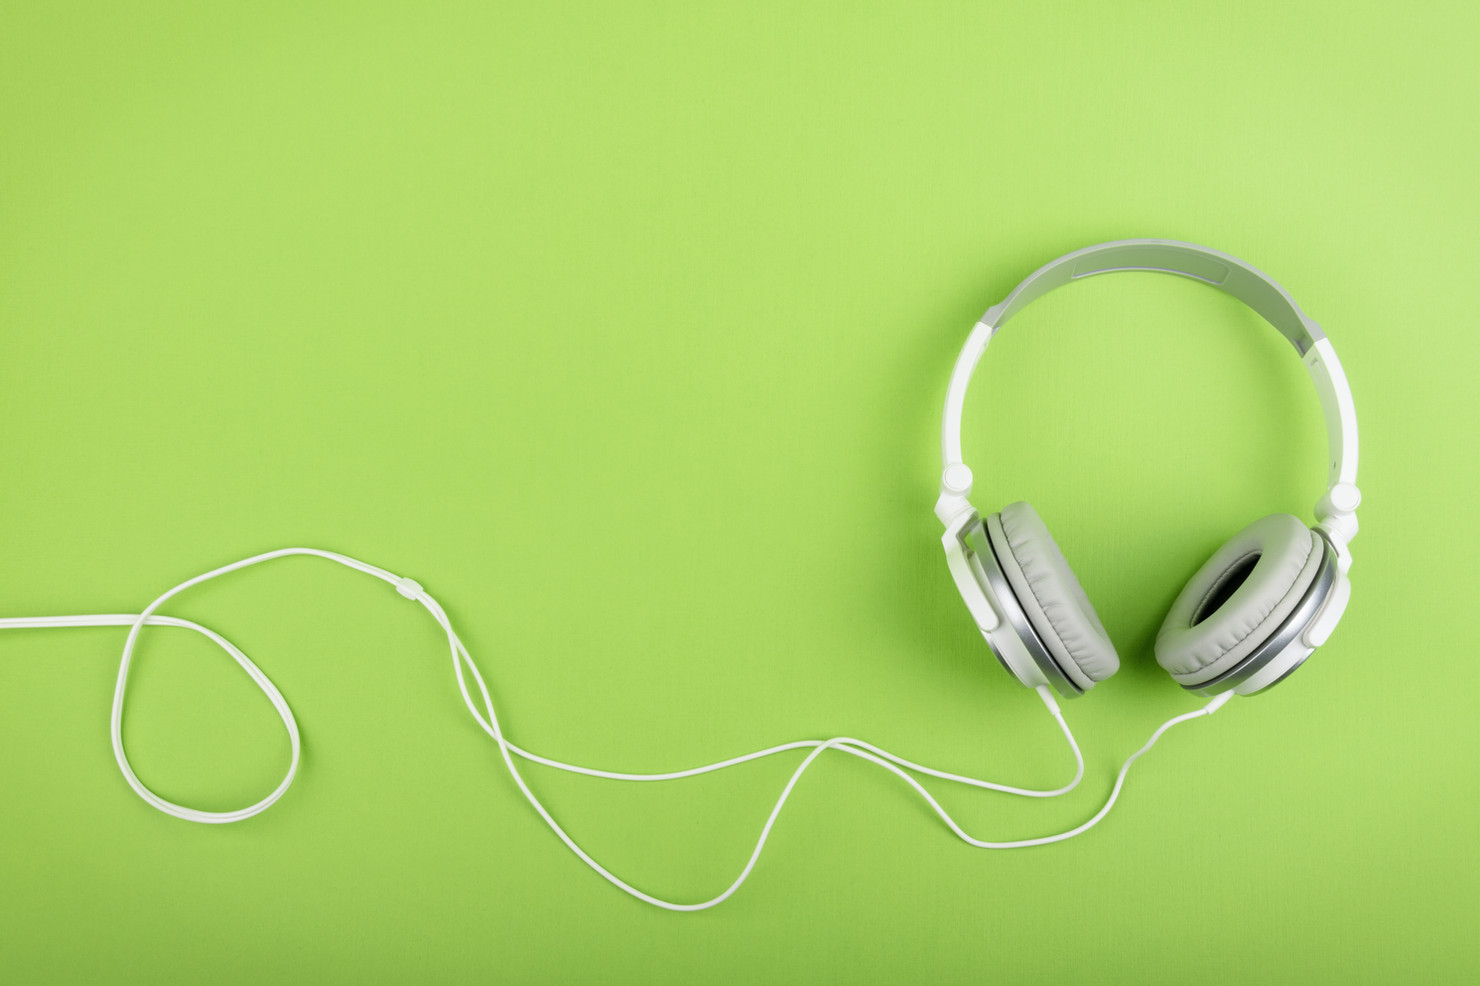 Audio courses can help with learning